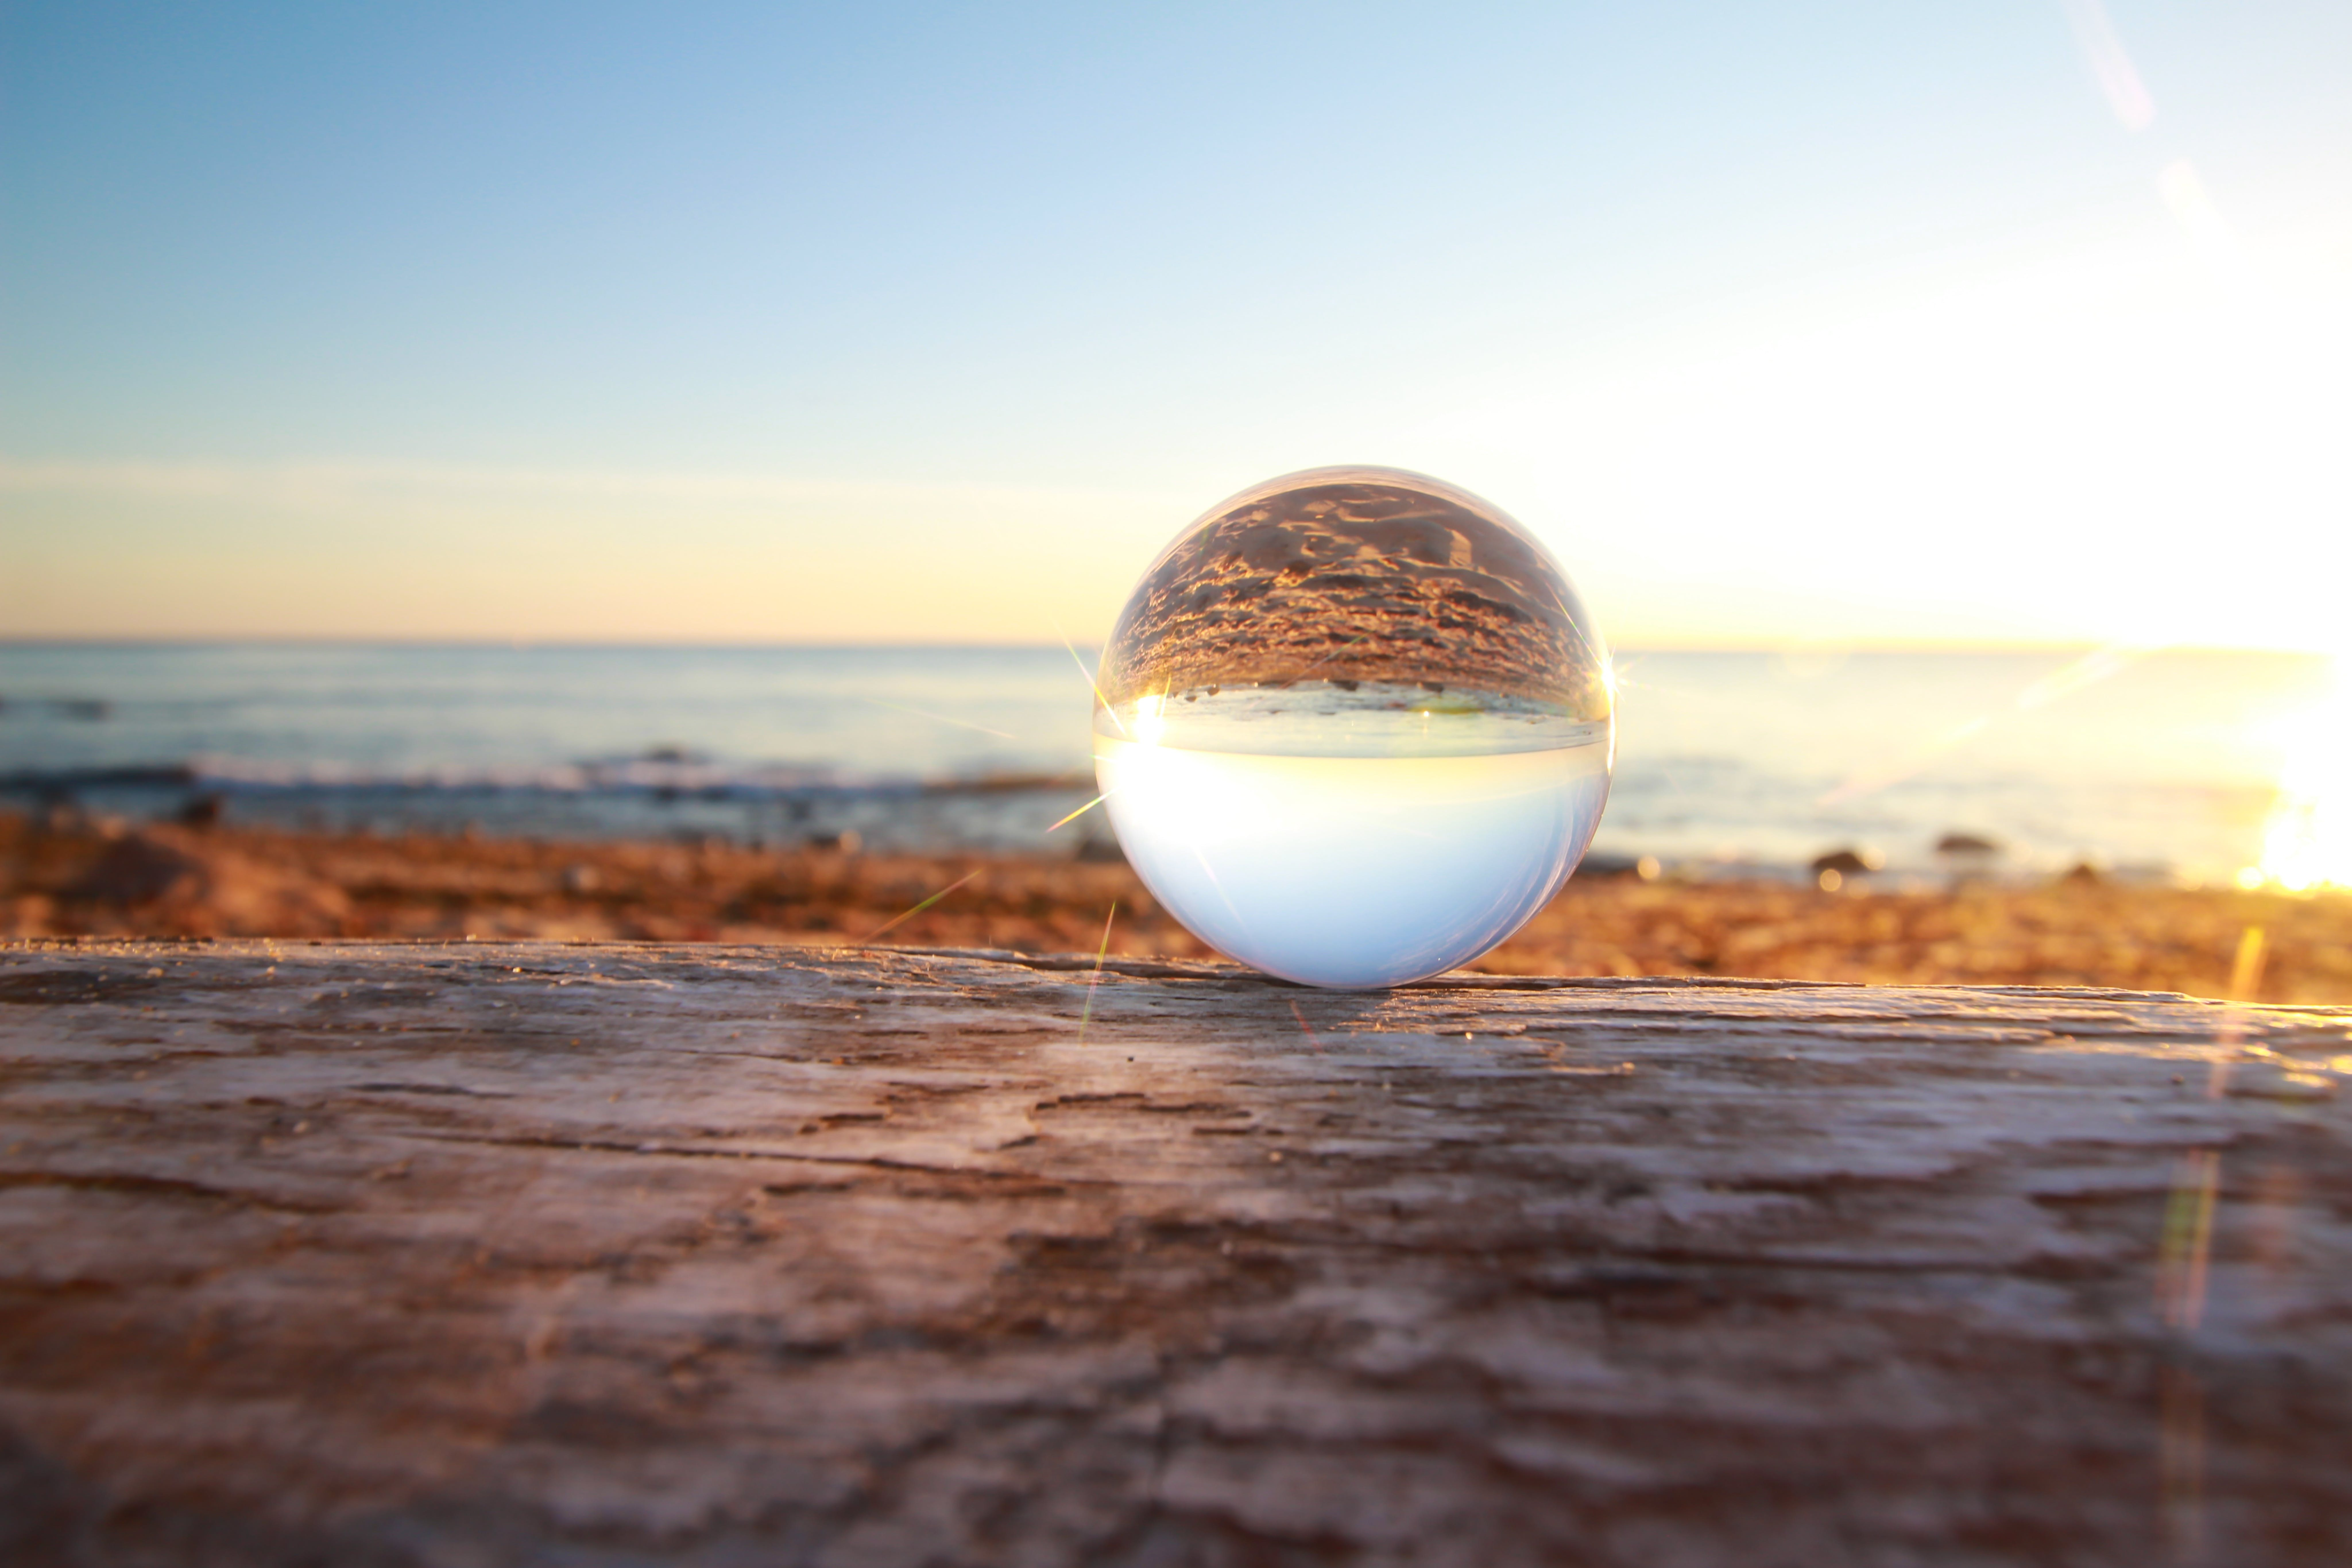 Clear Marble Toy Reflecting Seashore during Golden Hour